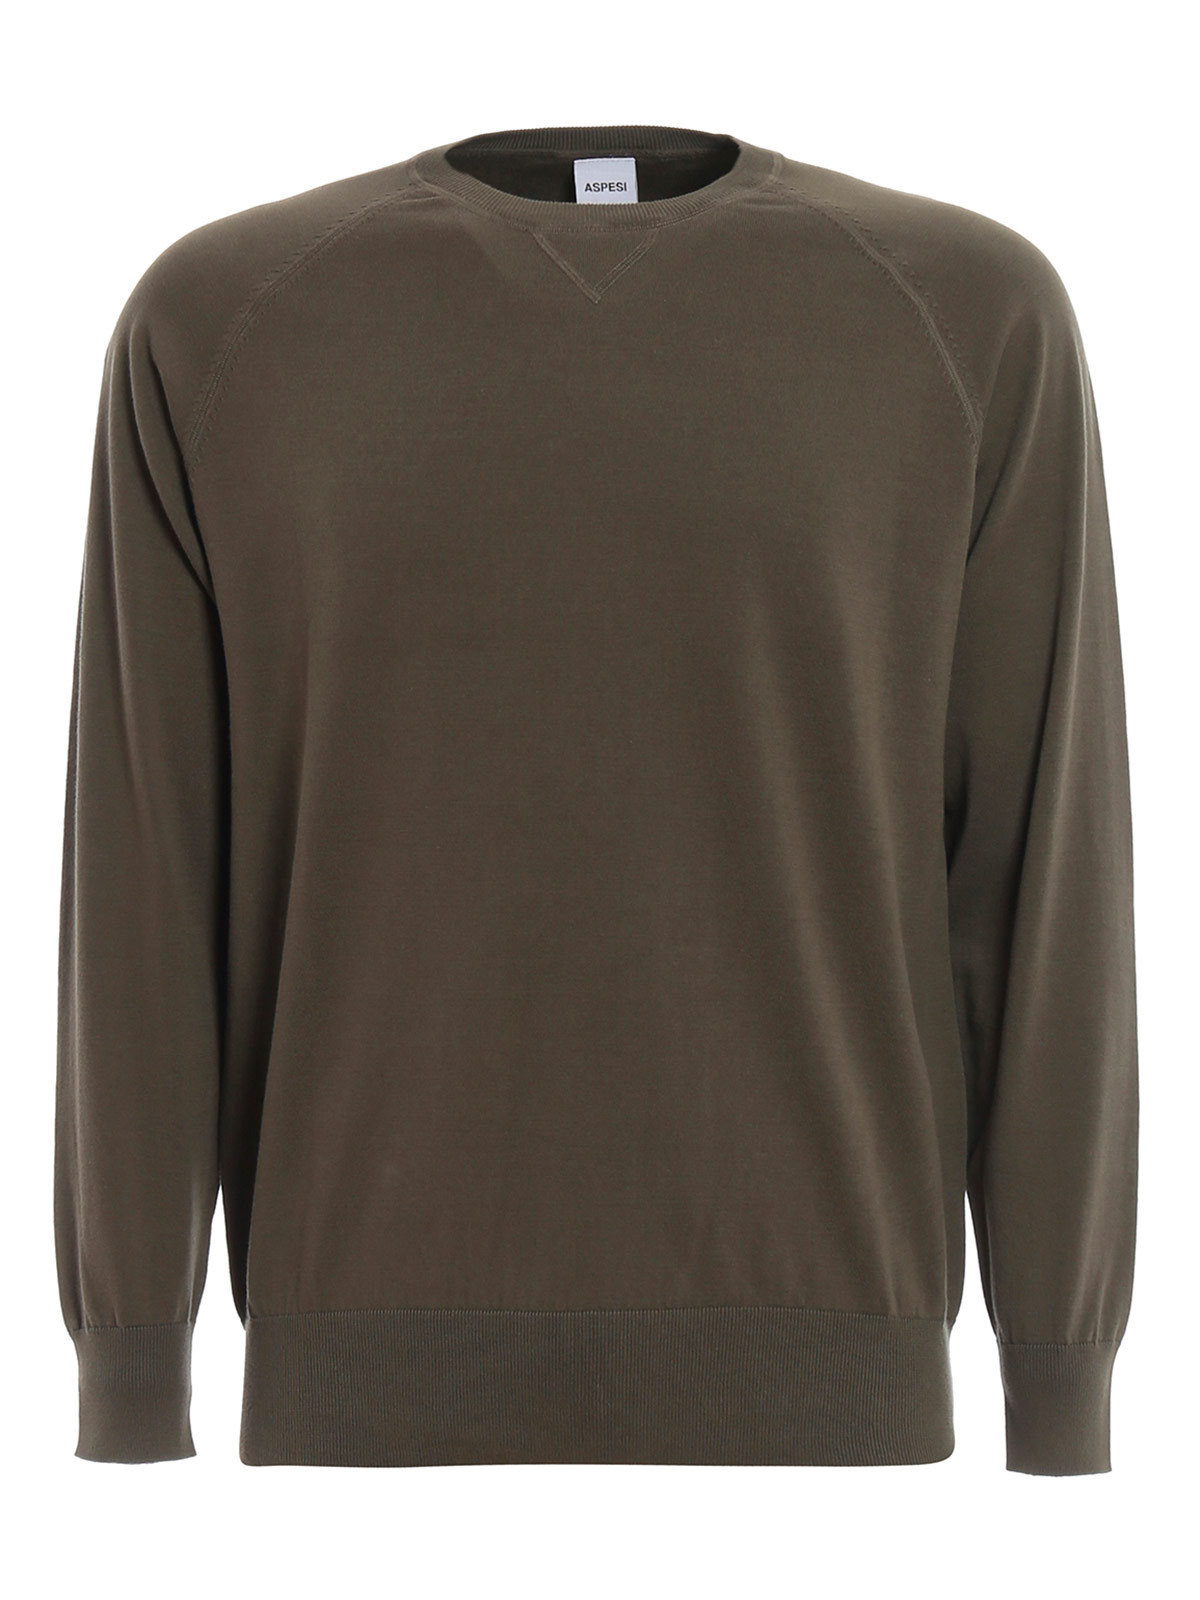 Picture of ASPESI | Men's Crewneck Sweater